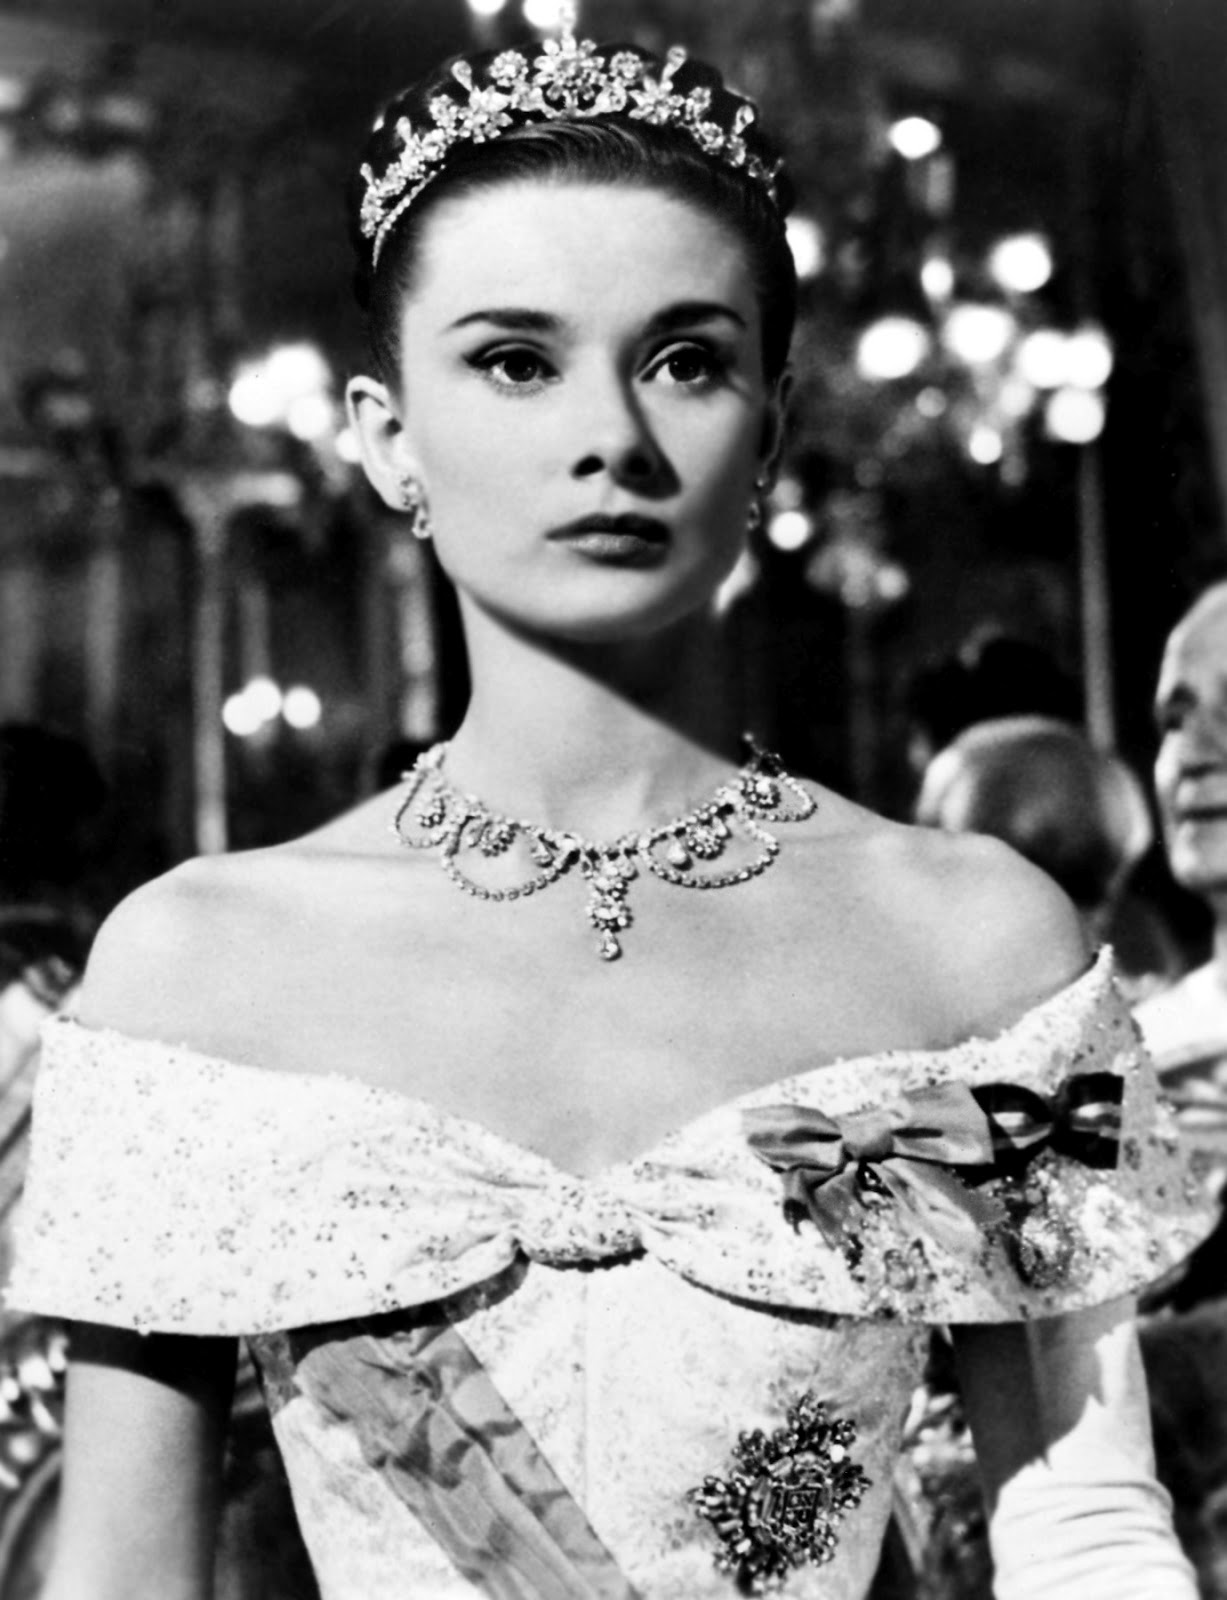 fashion blog fashion in films audrey hepburn classics roman holiday. Black Bedroom Furniture Sets. Home Design Ideas